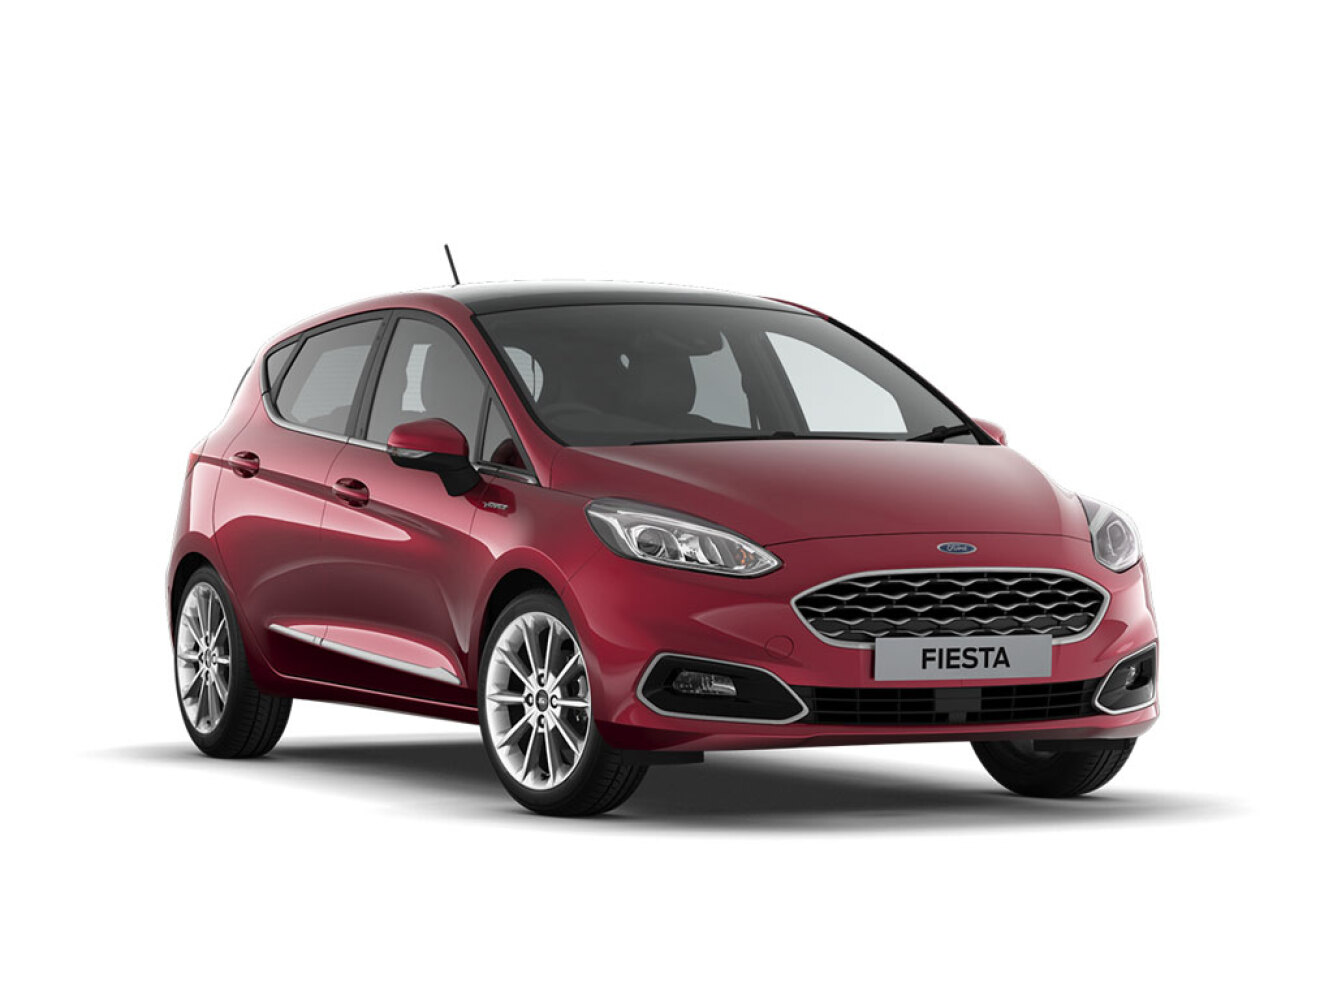 new ford fiesta vignale 1 5 tdci 5dr diesel hatchback for sale bristol street. Black Bedroom Furniture Sets. Home Design Ideas